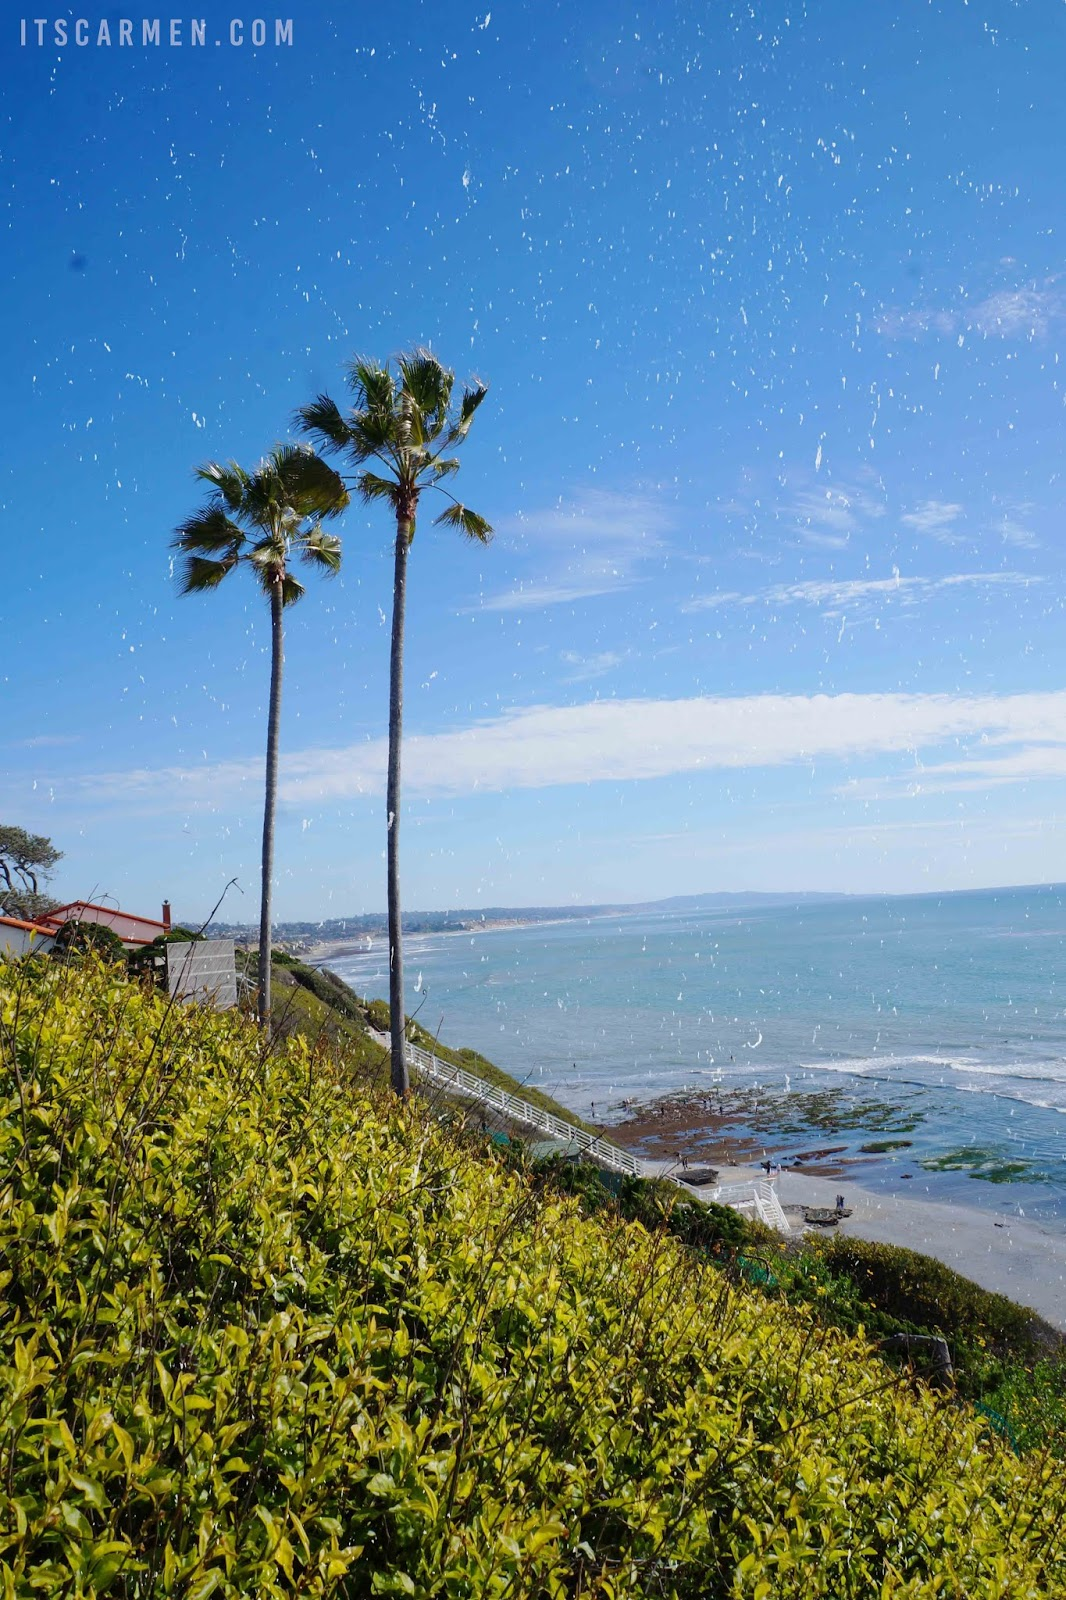 8 Things to Do in Encinitas, California: Don't Miss This North County San Diego Gem